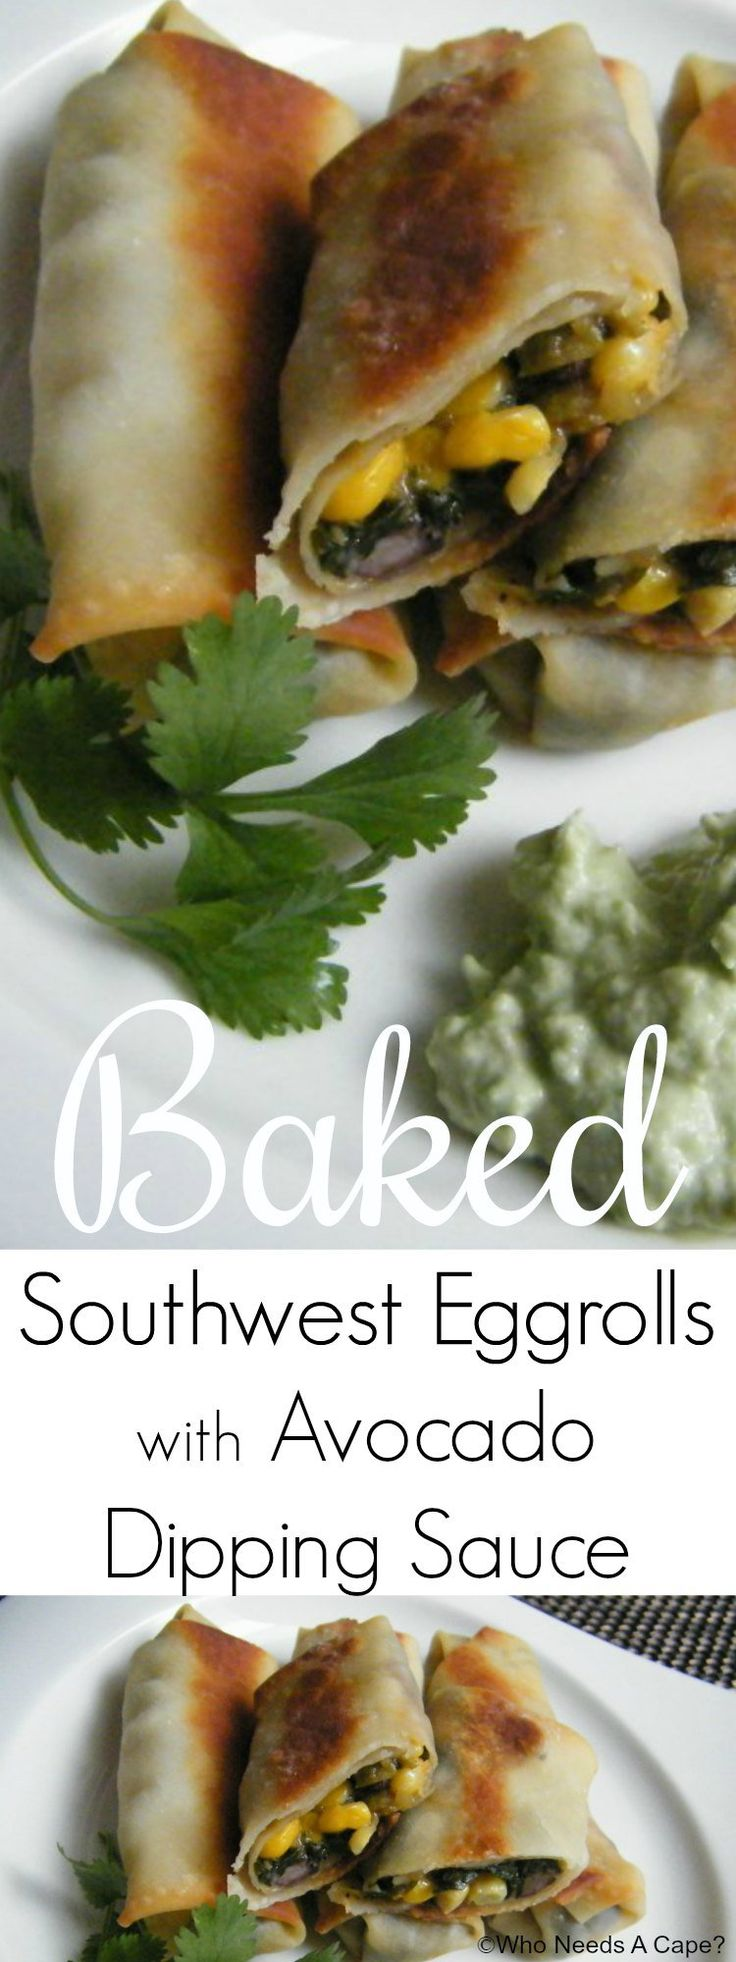 Need a tasty appetizer for game day or tailgating? Make these easy Baked Southwest Eggrolls with Avocado Dipping Sauce, they are packed with yum and always a hit. Perfect for Super Bowl spreads!